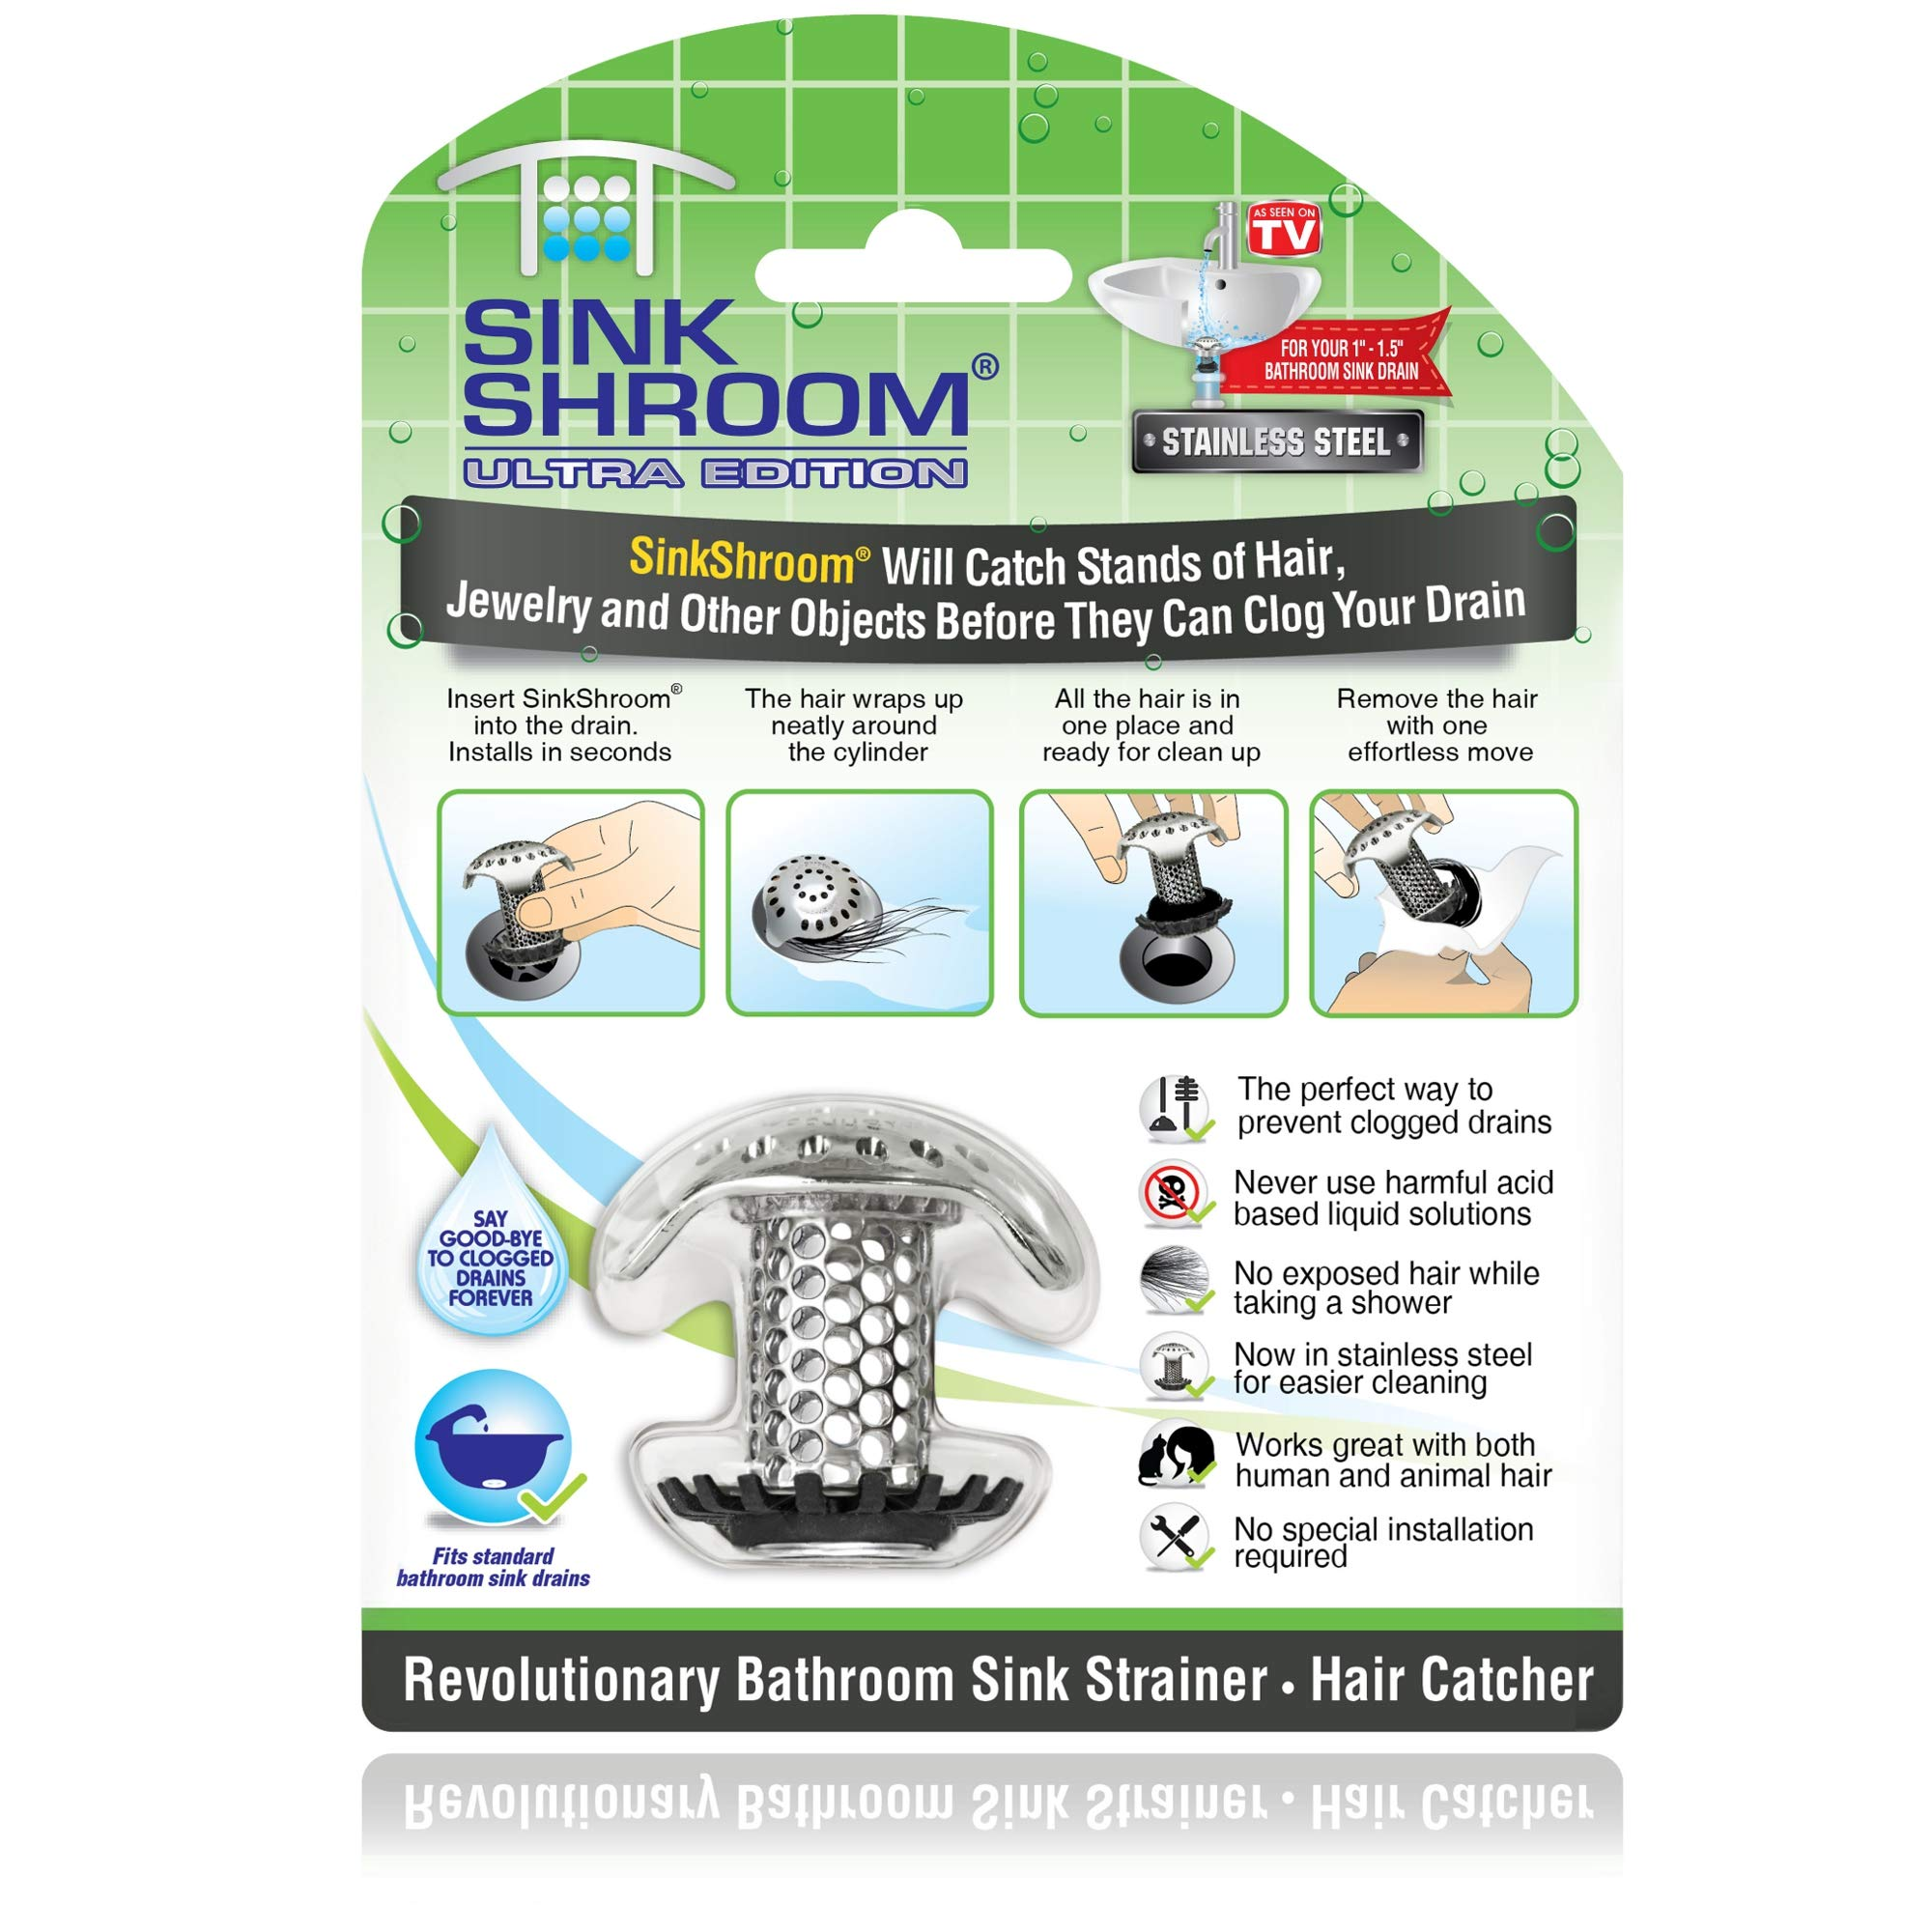 SinkShroom Ultra Revolutionary Bathroom Sink Drain Protector, Stainless Steel